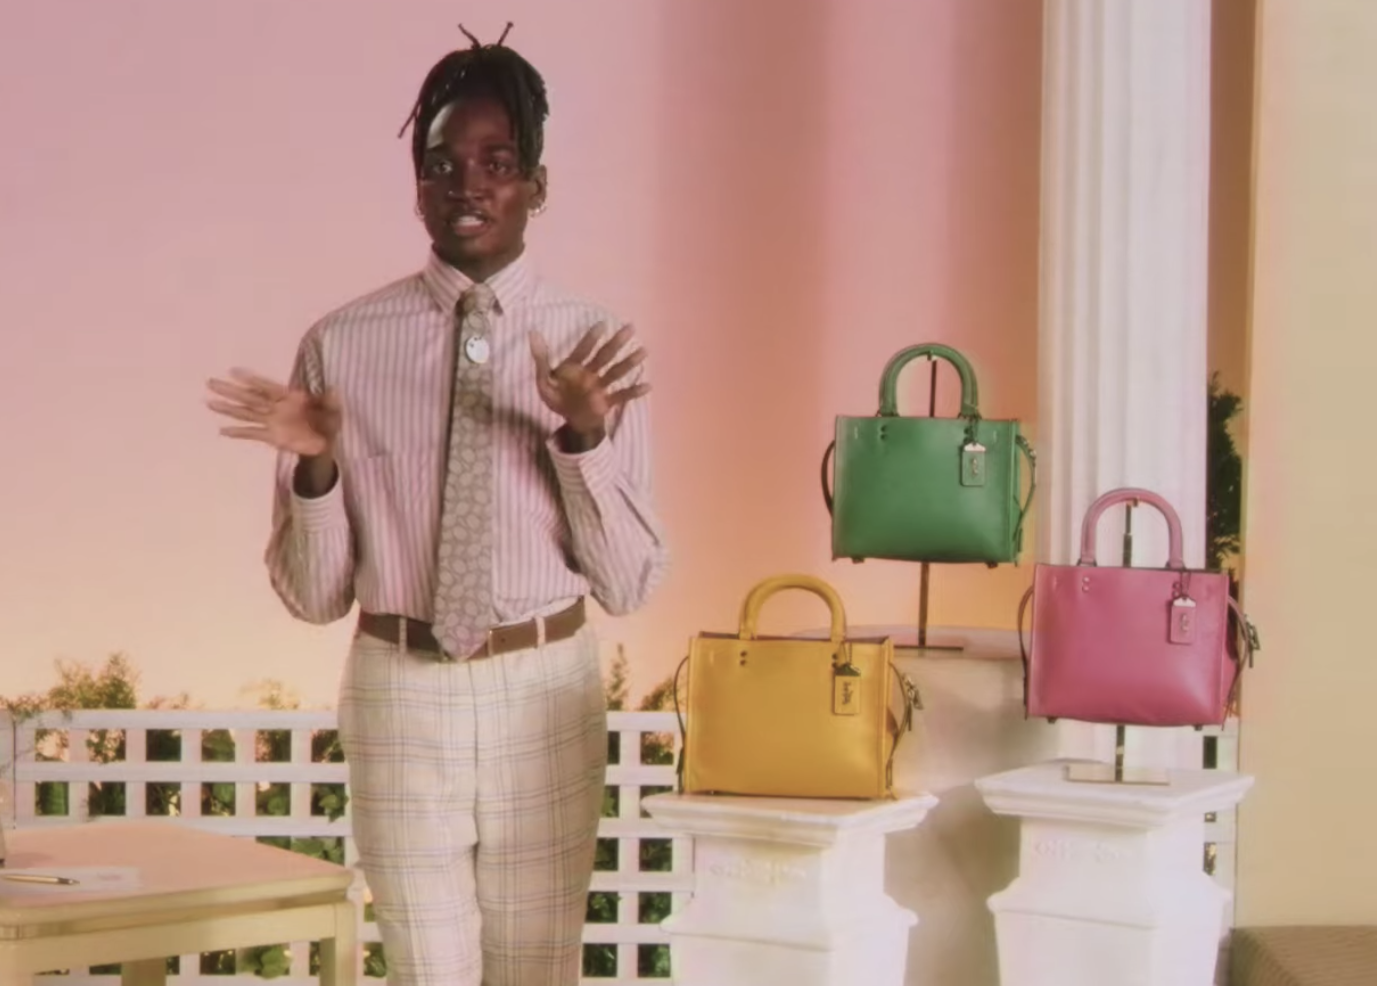 """Handbags seen here are part of Coach's fall 2021 """"Forever II collection,"""" first unveiled on Coach TV in Februart. The six limited-edition NFTs will be based on various products sold in the collection."""